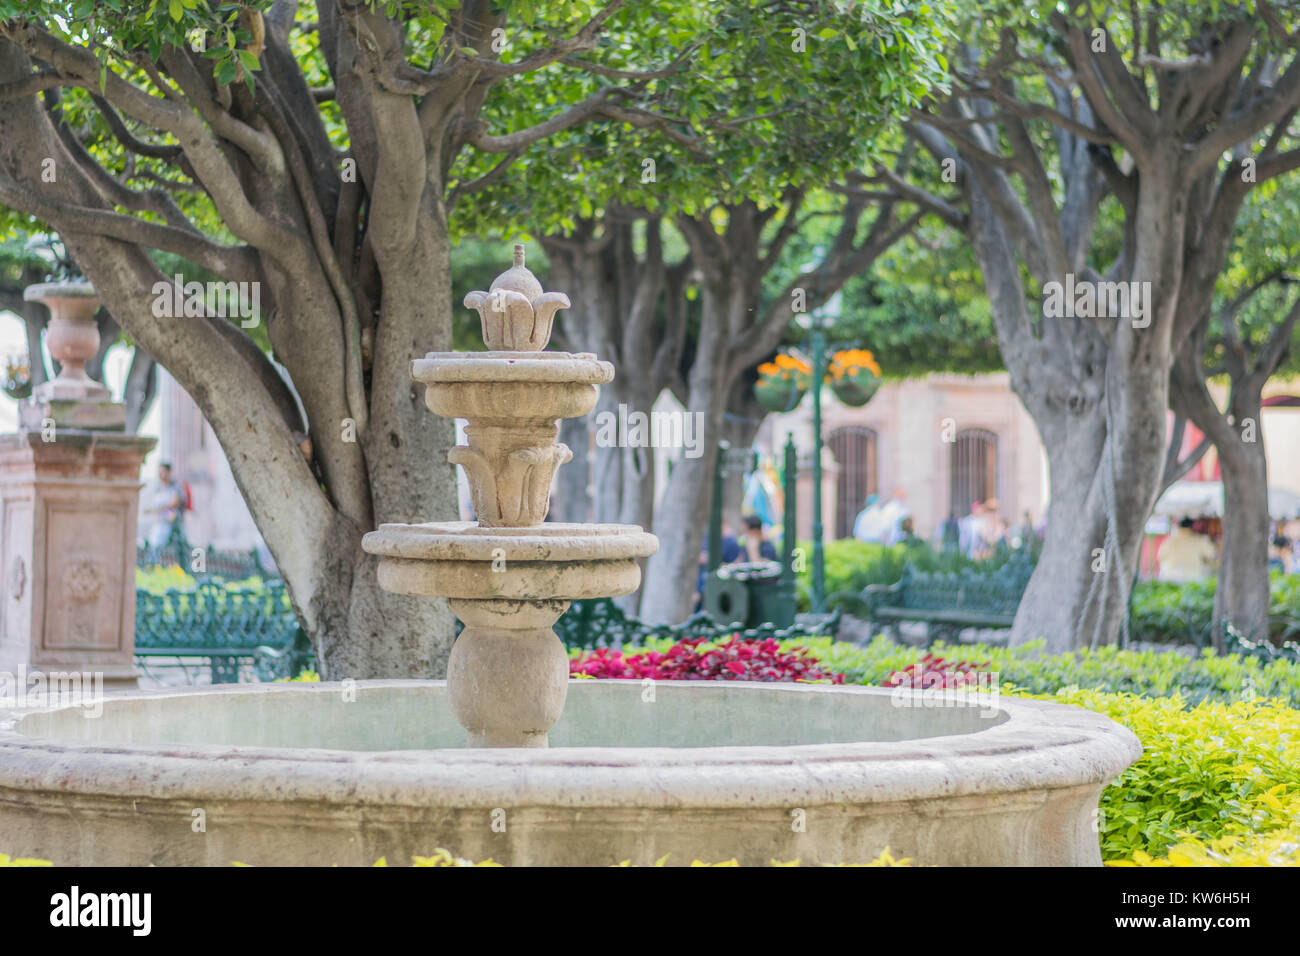 An old stone fountain and beautiful old trees, with park benches and hanging flower pots, in El Jardin-the center - Stock Image